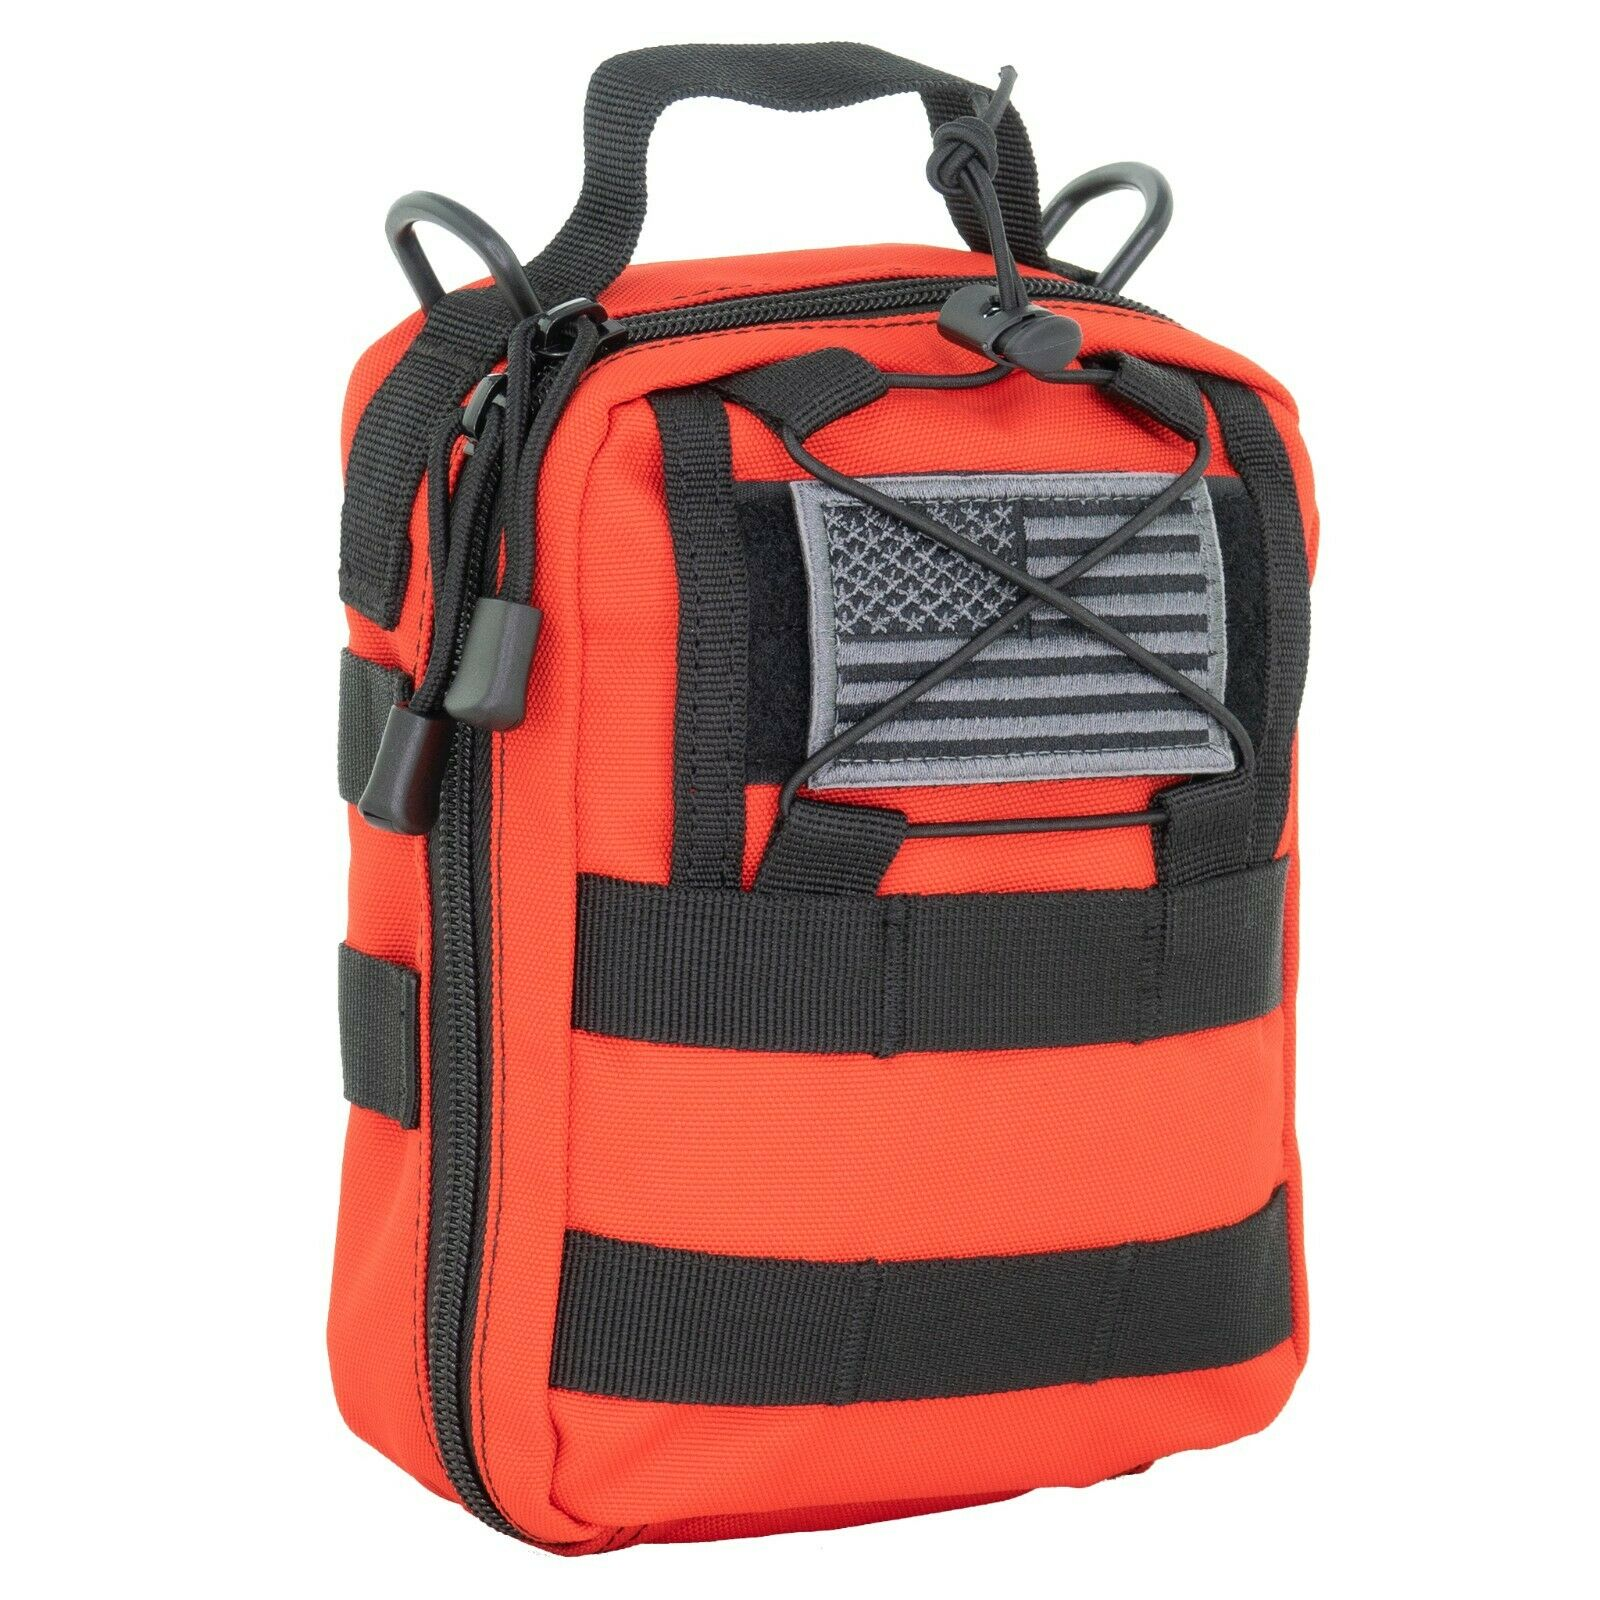 Best NEW LINE2DESIGN FIRST AID (IFAK) MOLLE POUCH - EMERGENCY MEDICAL TRAUMA BAG - RED